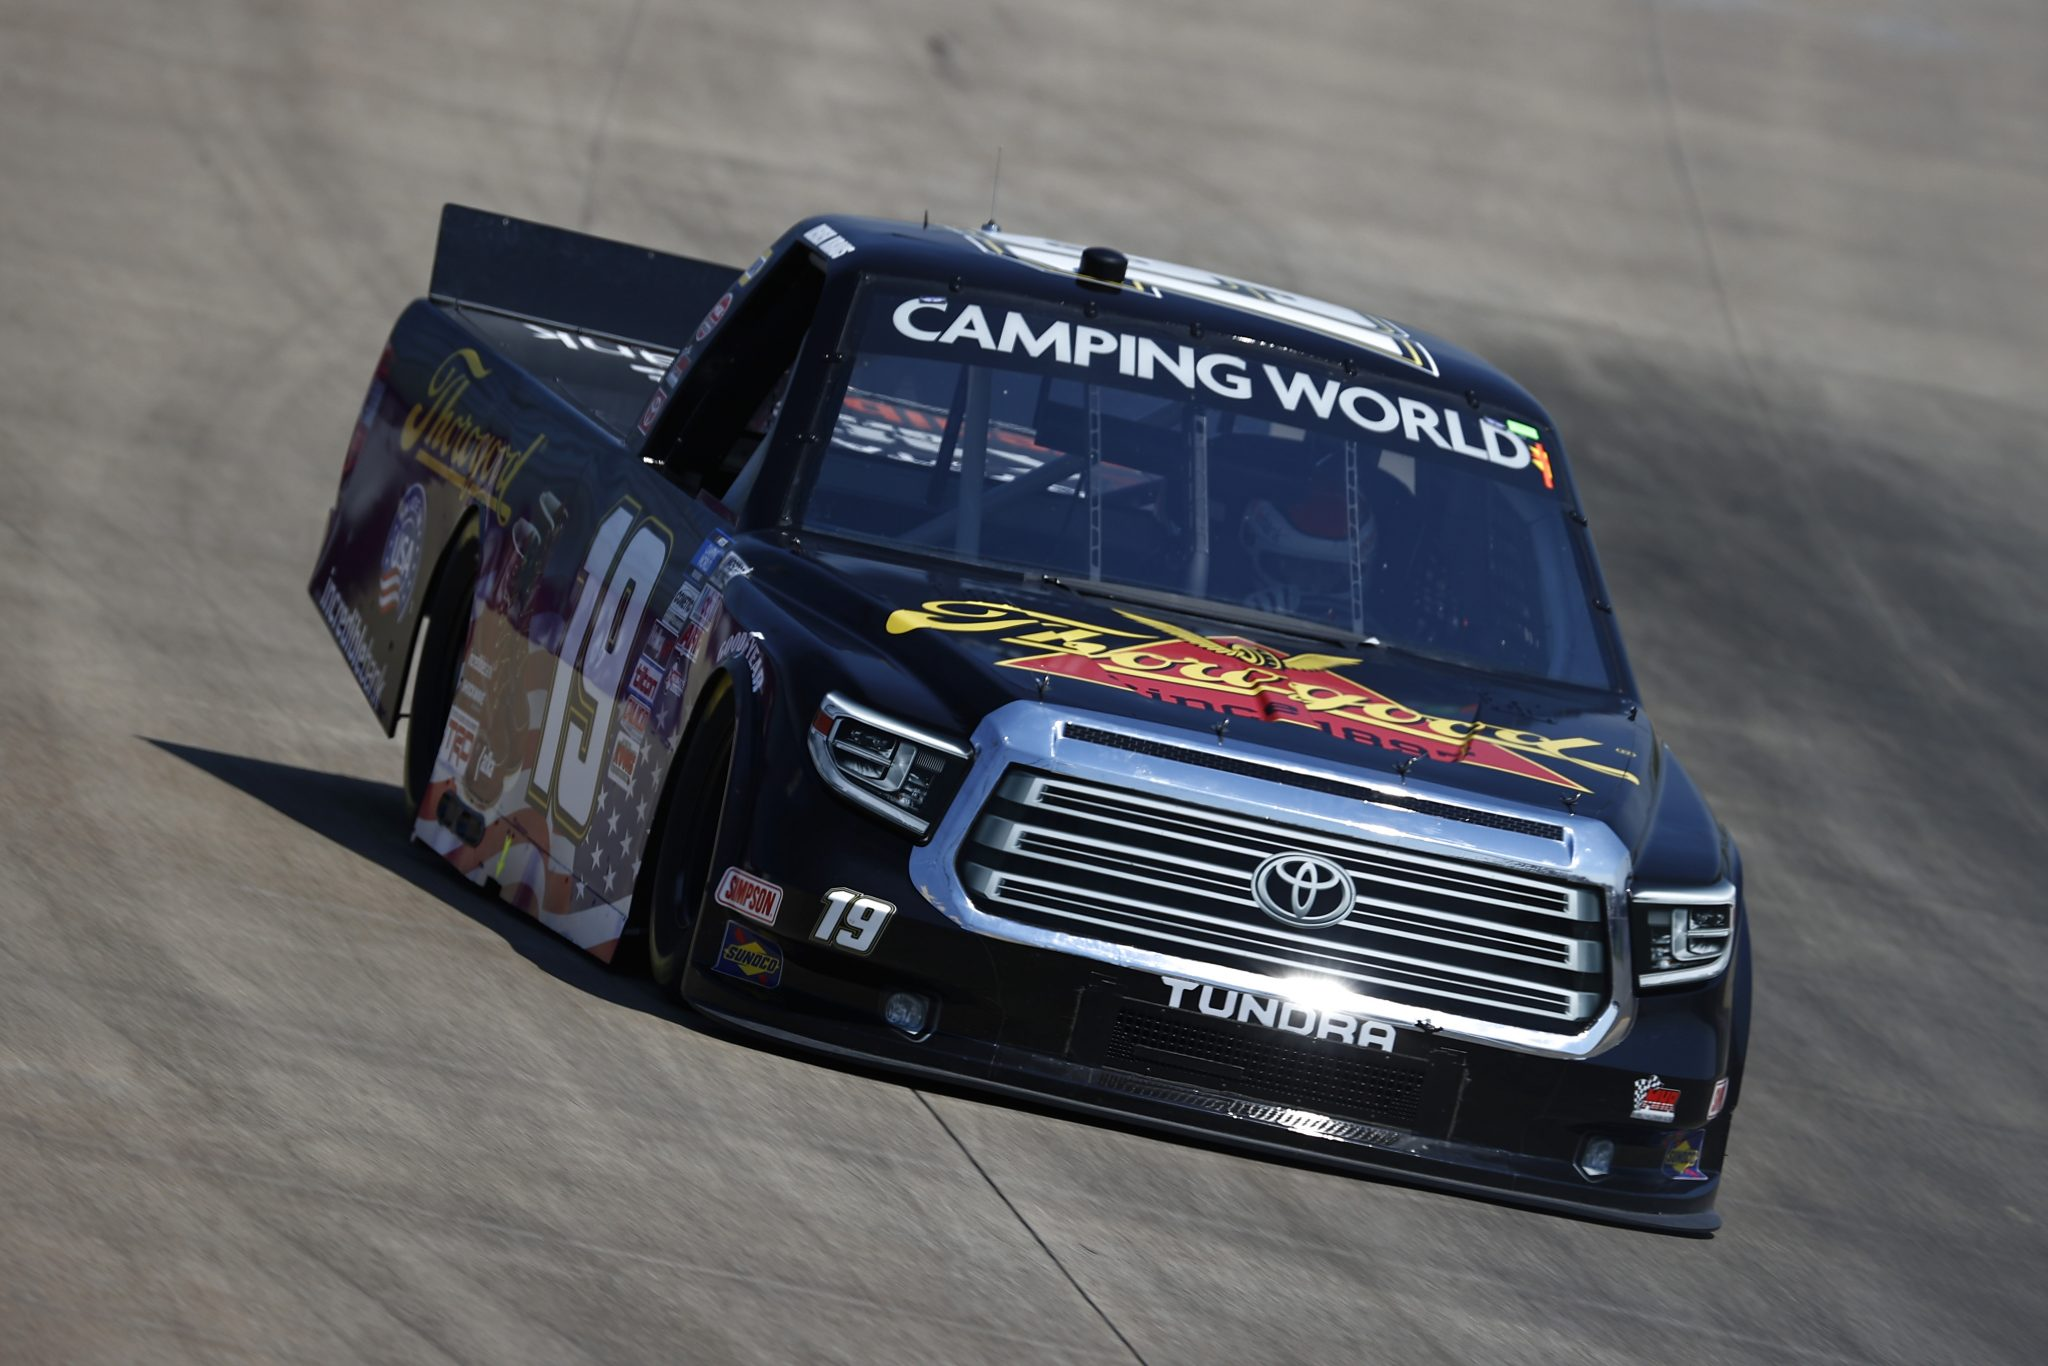 LEBANON, TENNESSEE - JUNE 18: Derek Kraus, driver of the #19 Thorogood Toyota, drives during practice for the NASCAR Camping World Truck Series Rackley Roofing 200 at Nashville Superspeedway on June 18, 2021 in Lebanon, Tennessee. (Photo by Jared C. Tilton/Getty Images) | Getty Images